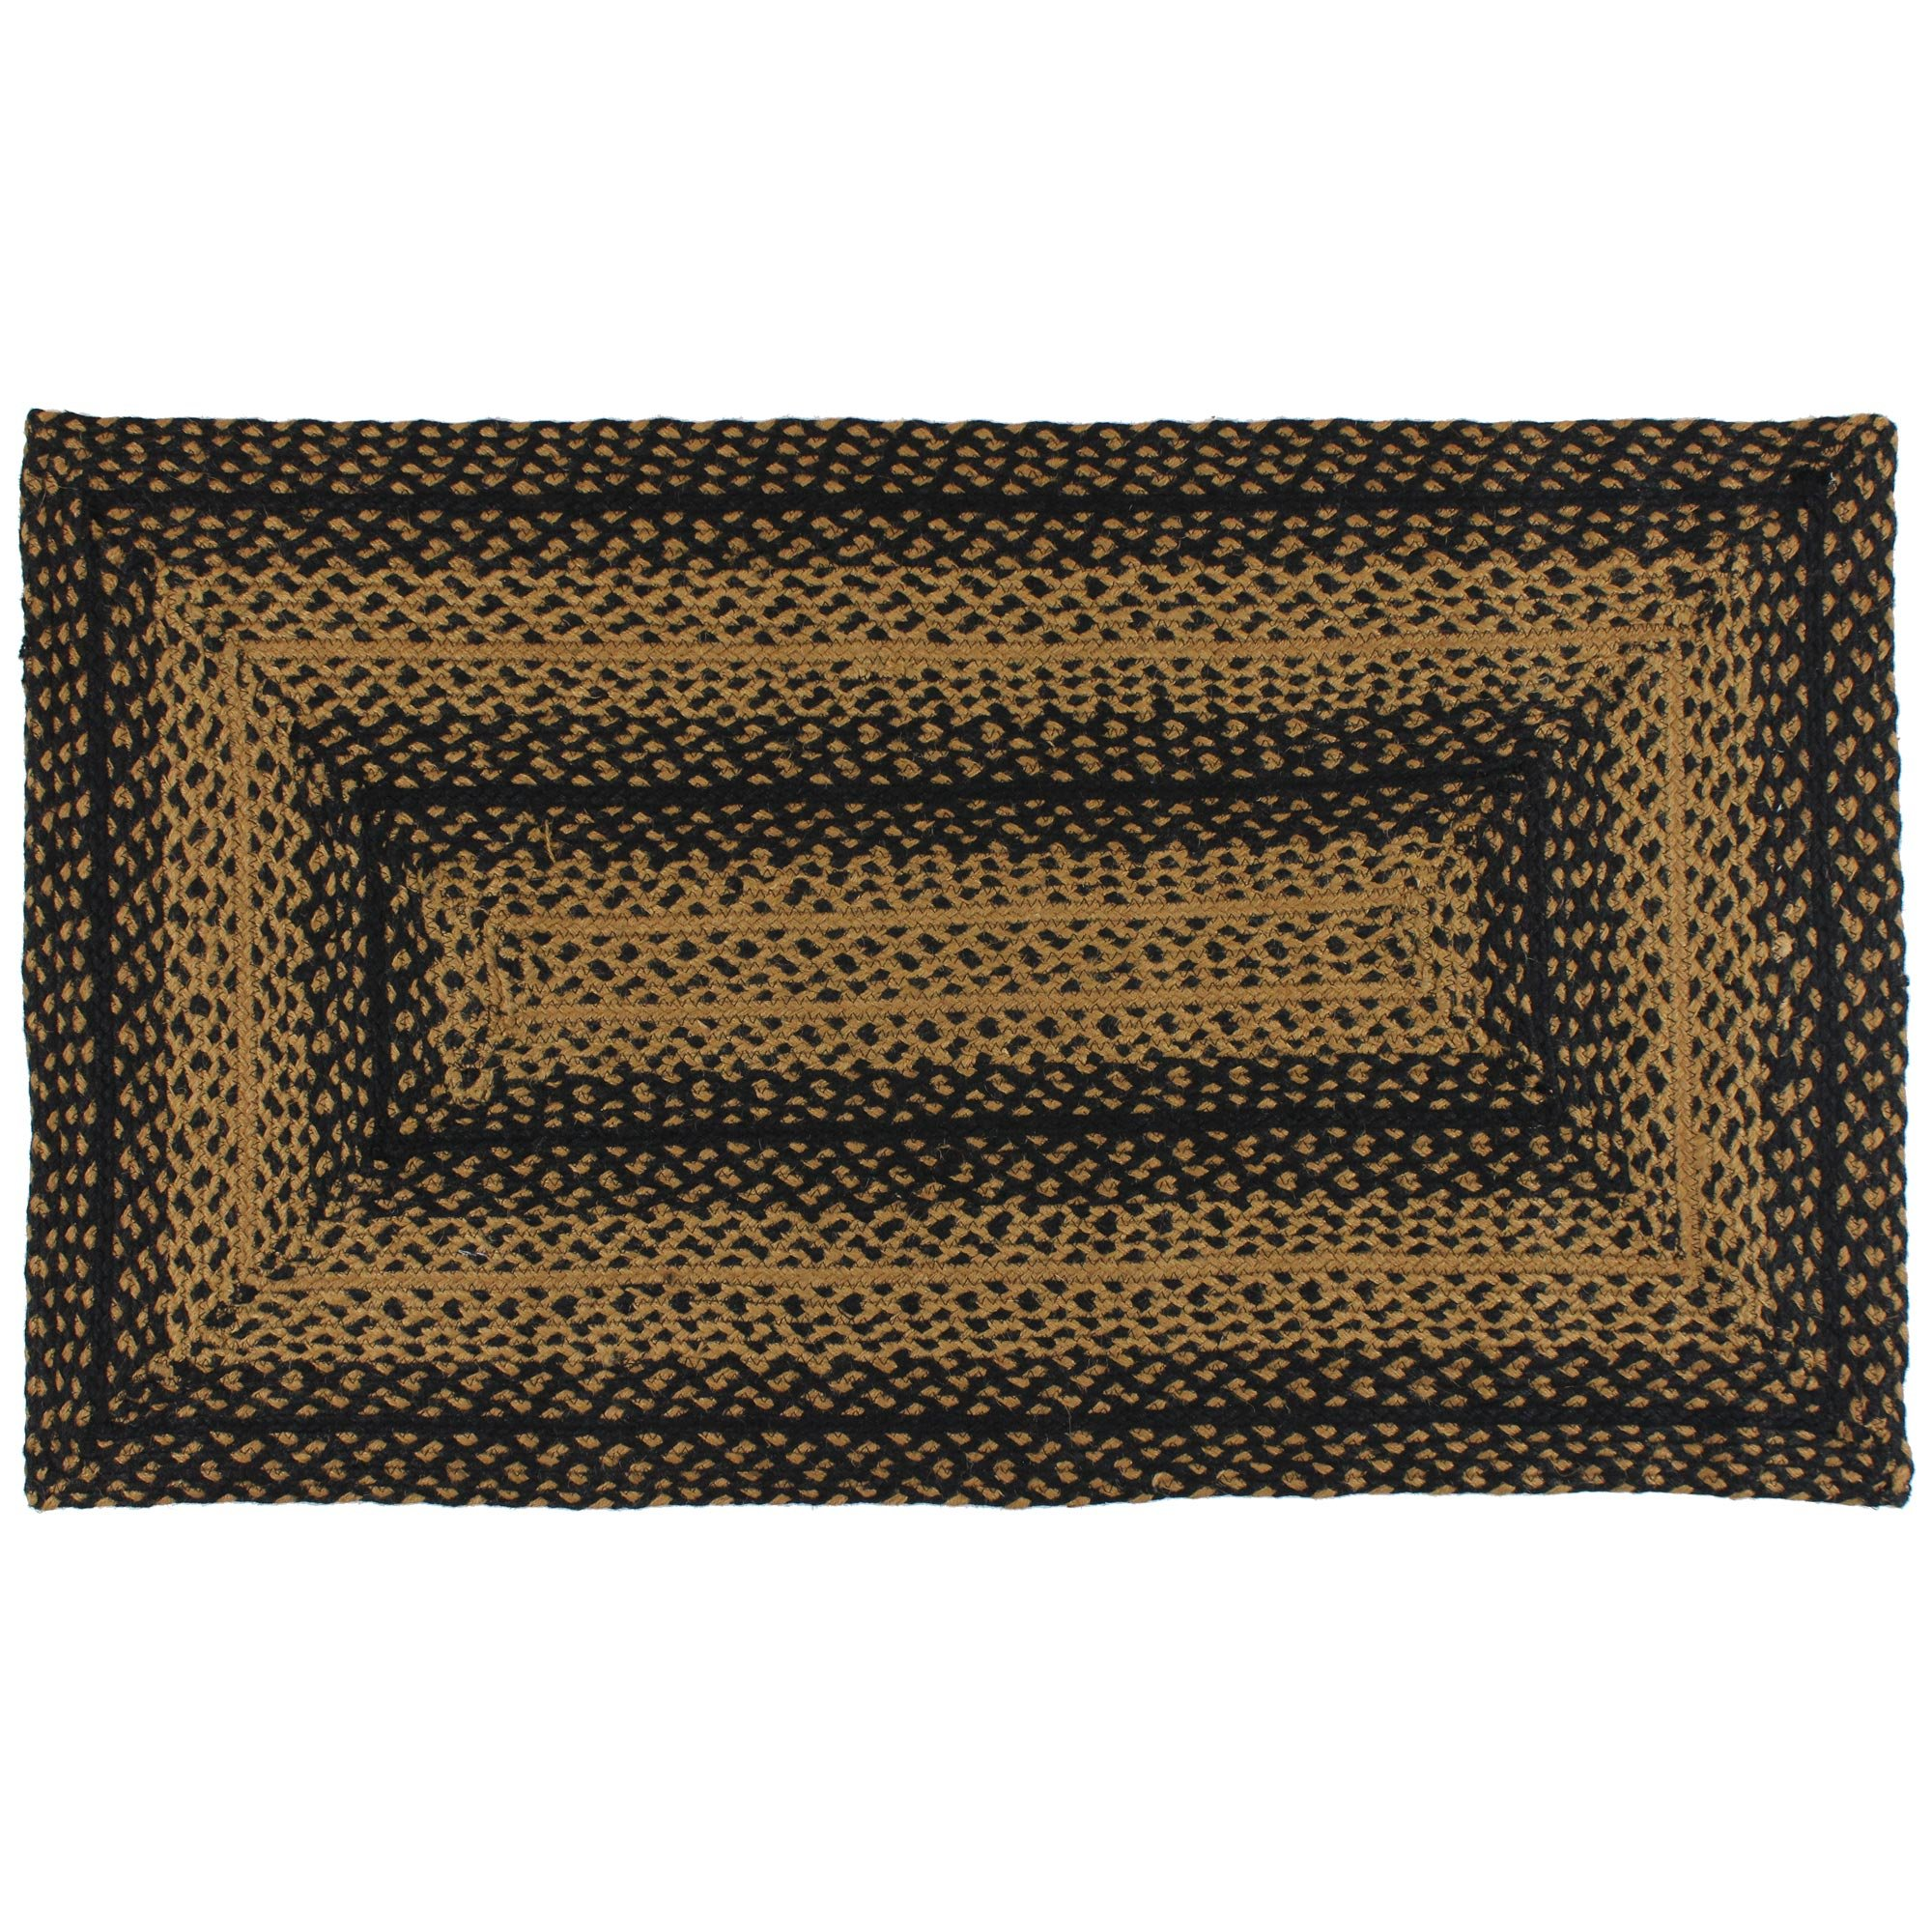 IHF Home Decor Ebony Design Rectangle Braided Rug 20'' x 30'' Country Style Area Floor Carpet Jute Fiber